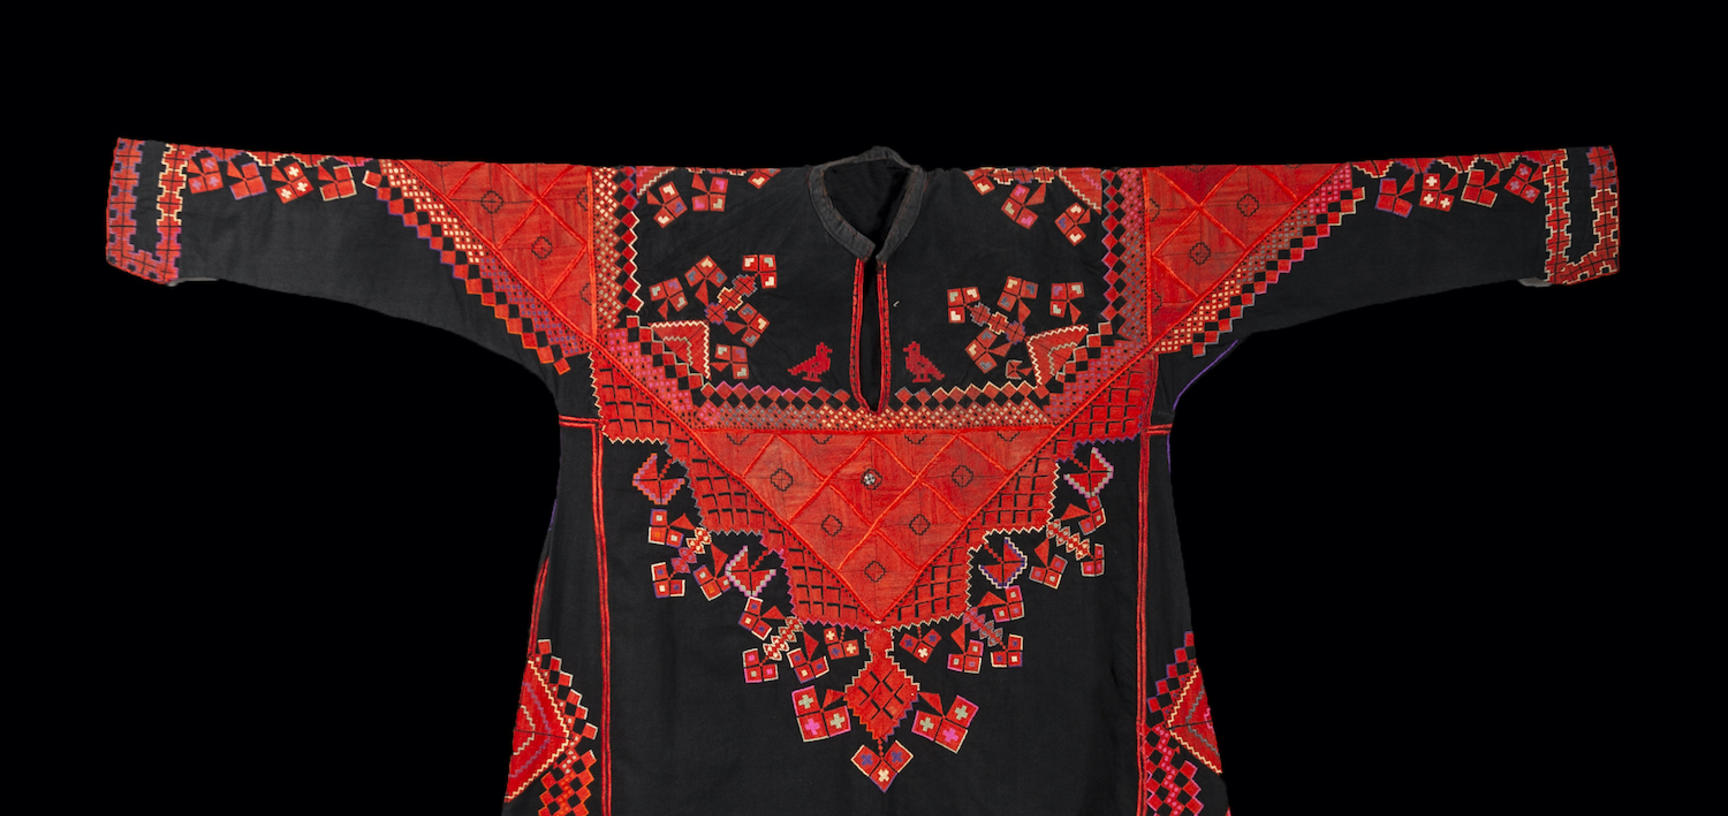 A dark long sleeve dress decorated with red embroidery.